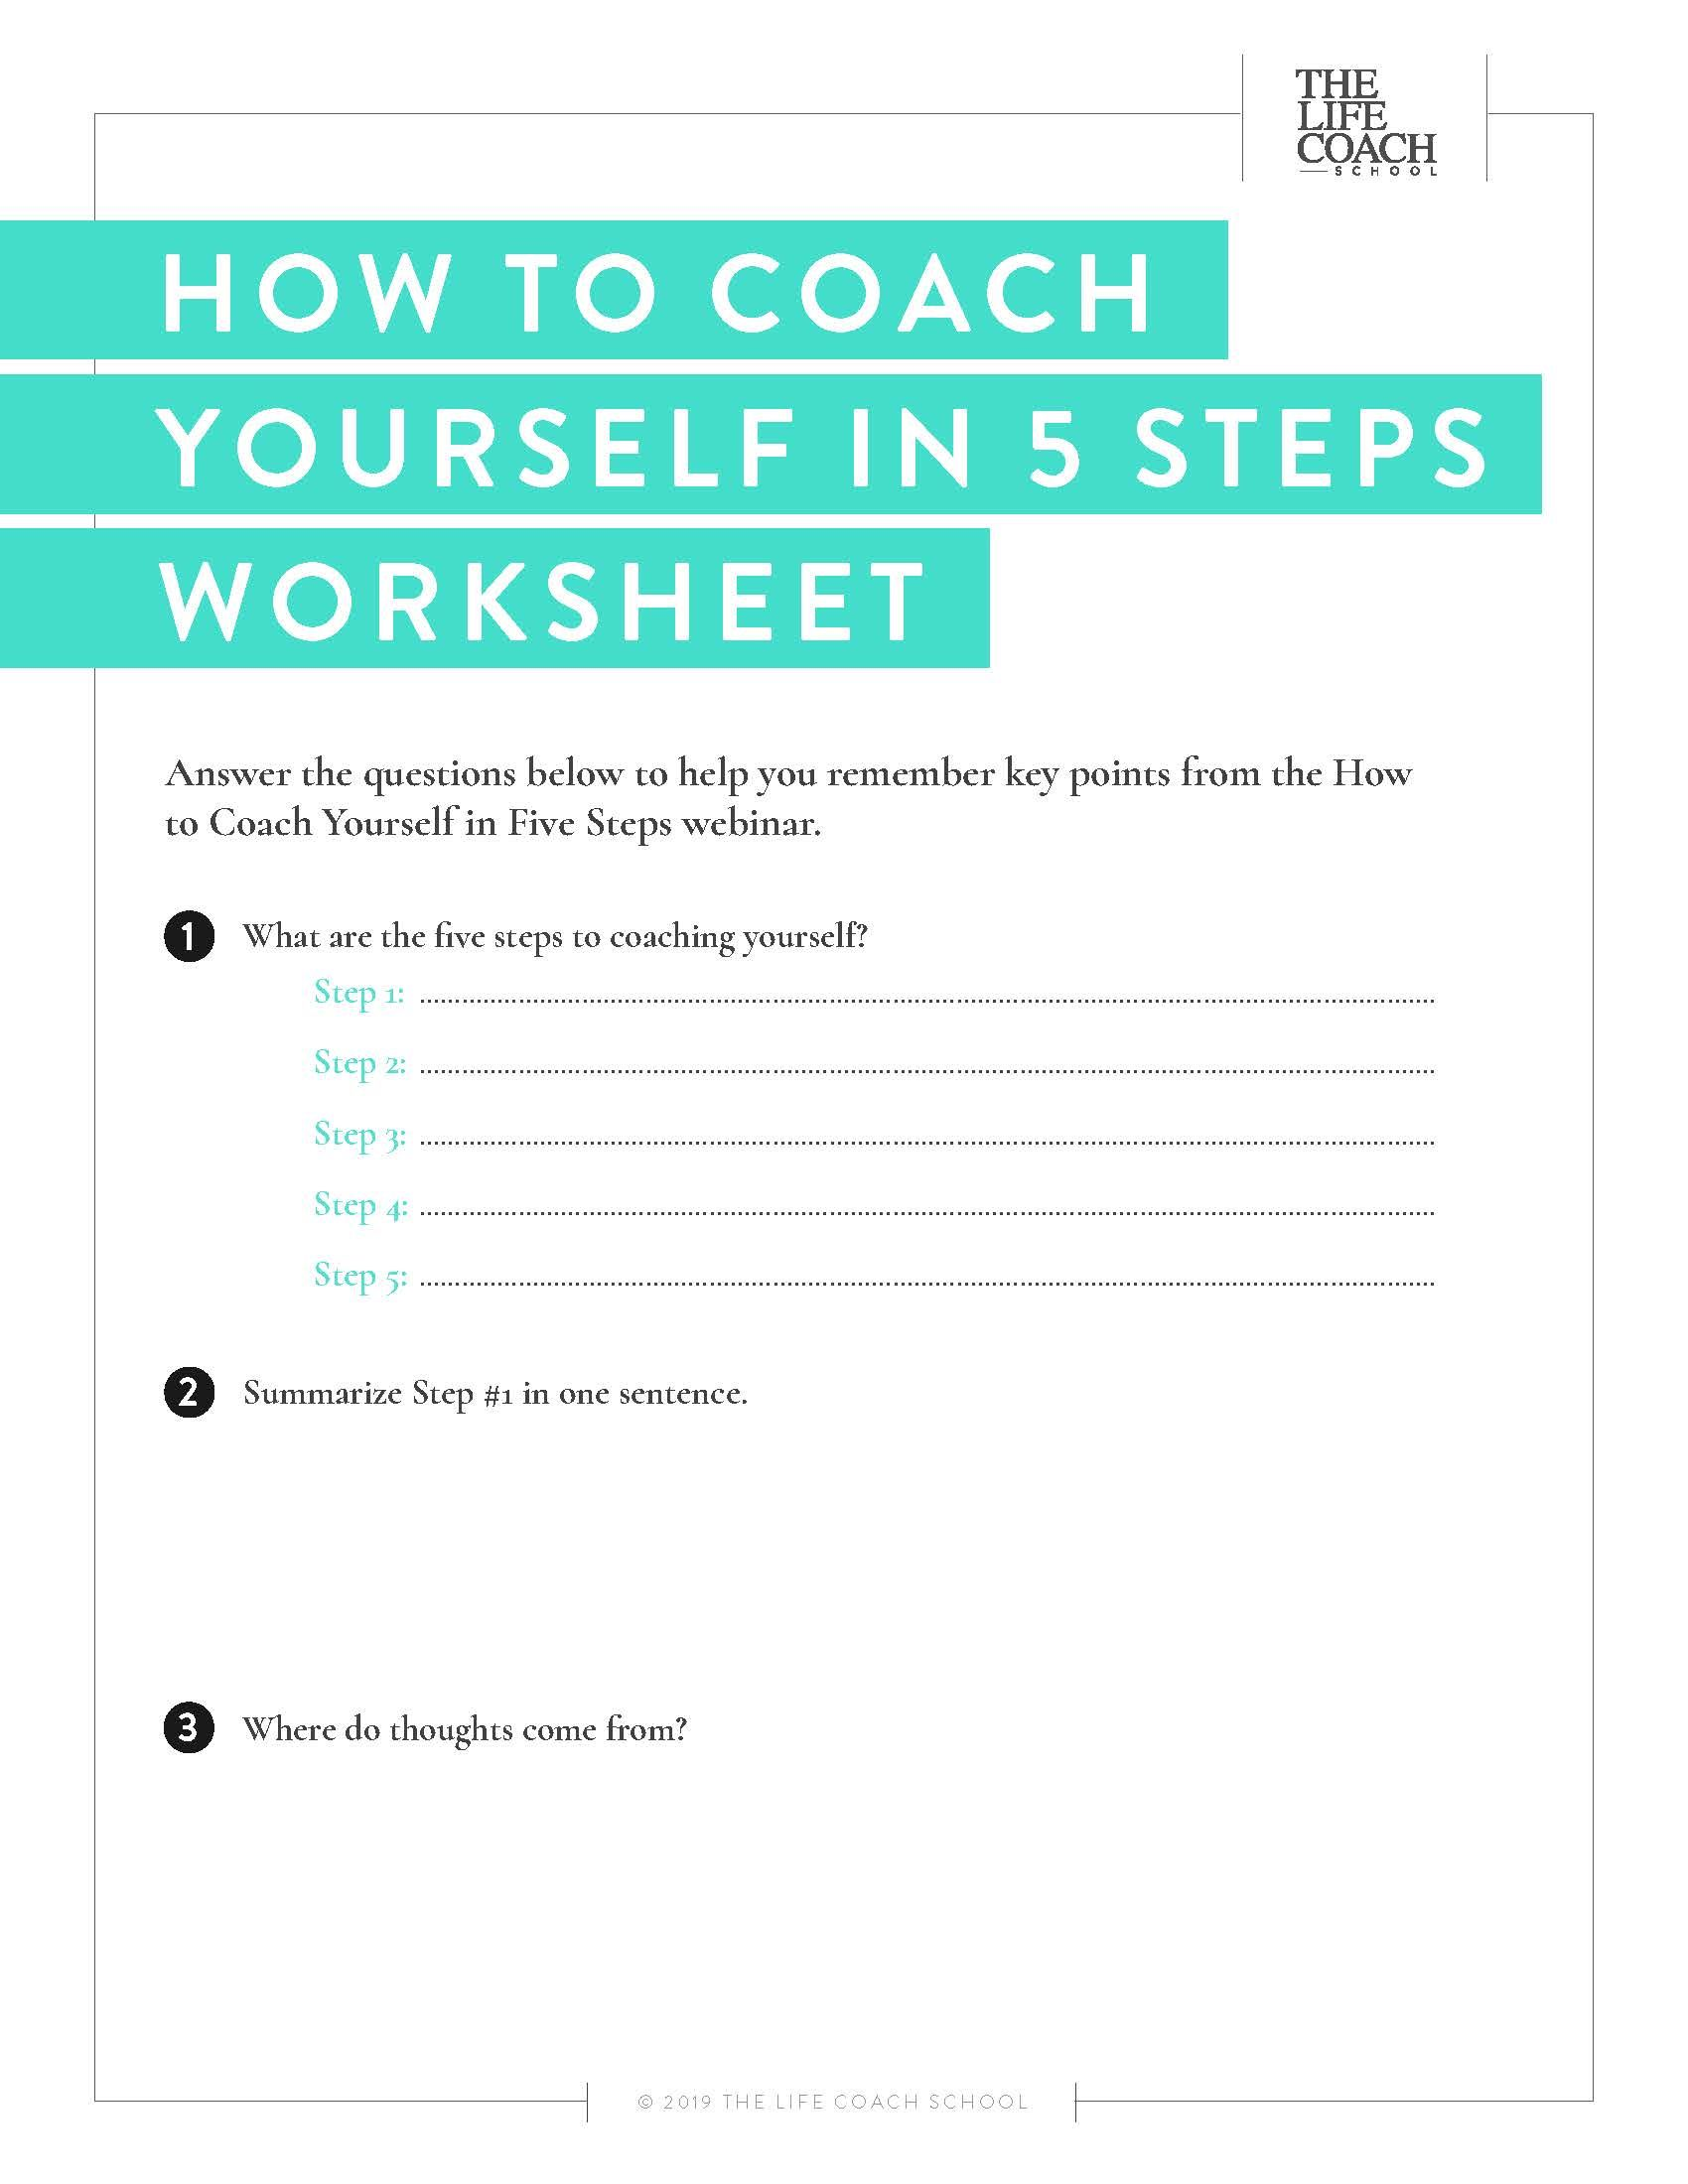 How To Coach Yourself In 5 Steps